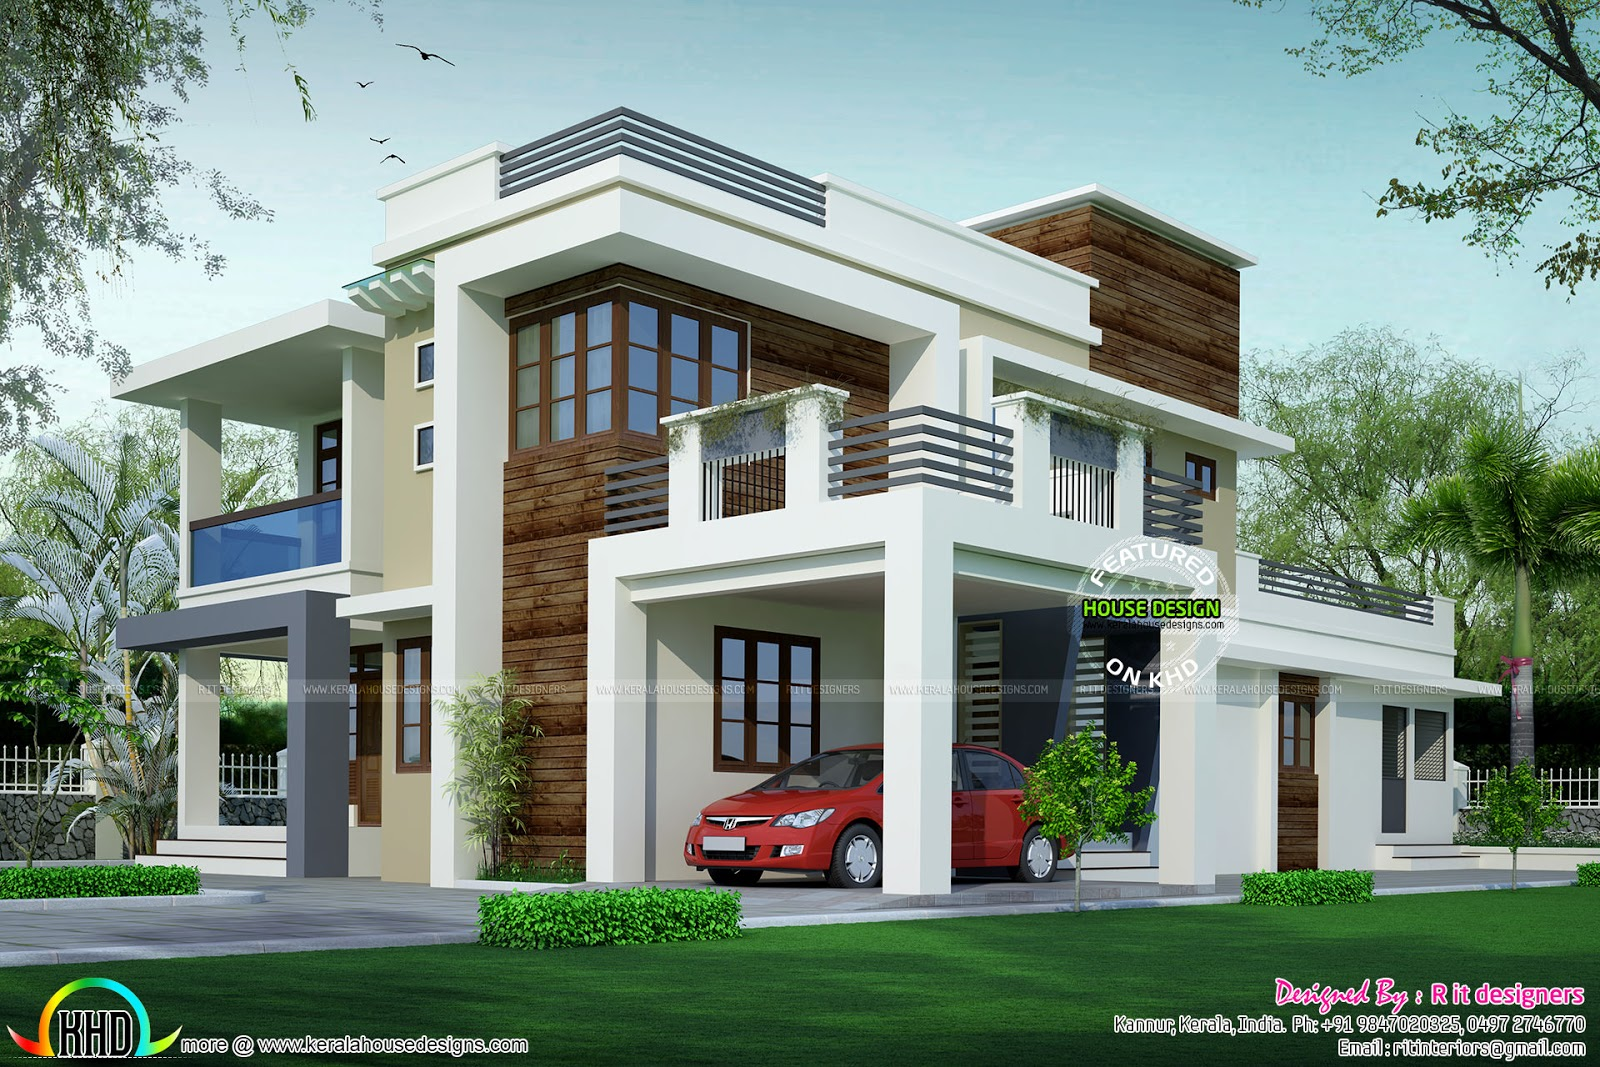 House design contemporary model kerala home design and for Latest modern home designs